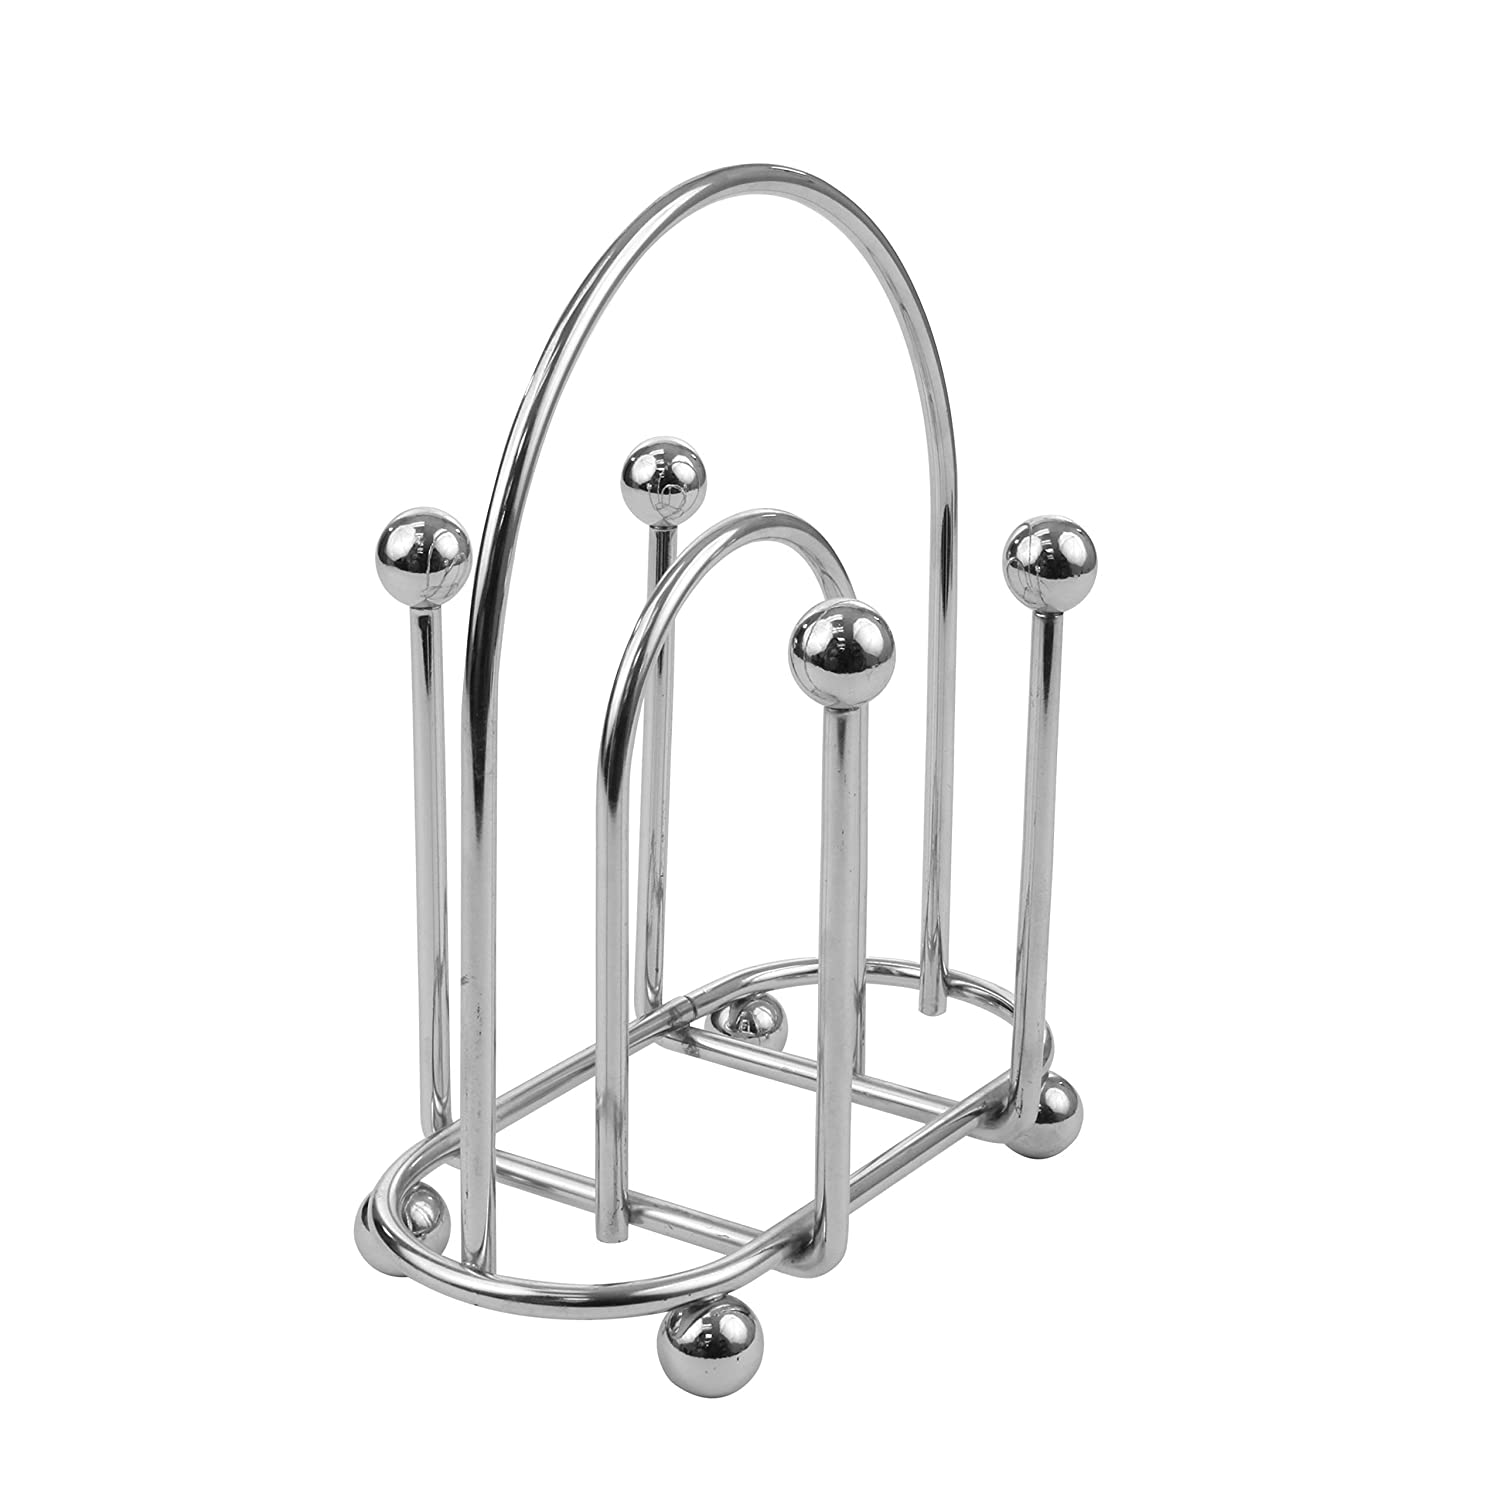 Spectrum Diversified Pantry Works Arch Napkin Holder, Chrome Spectrum Diversified Designs Inc. 40870